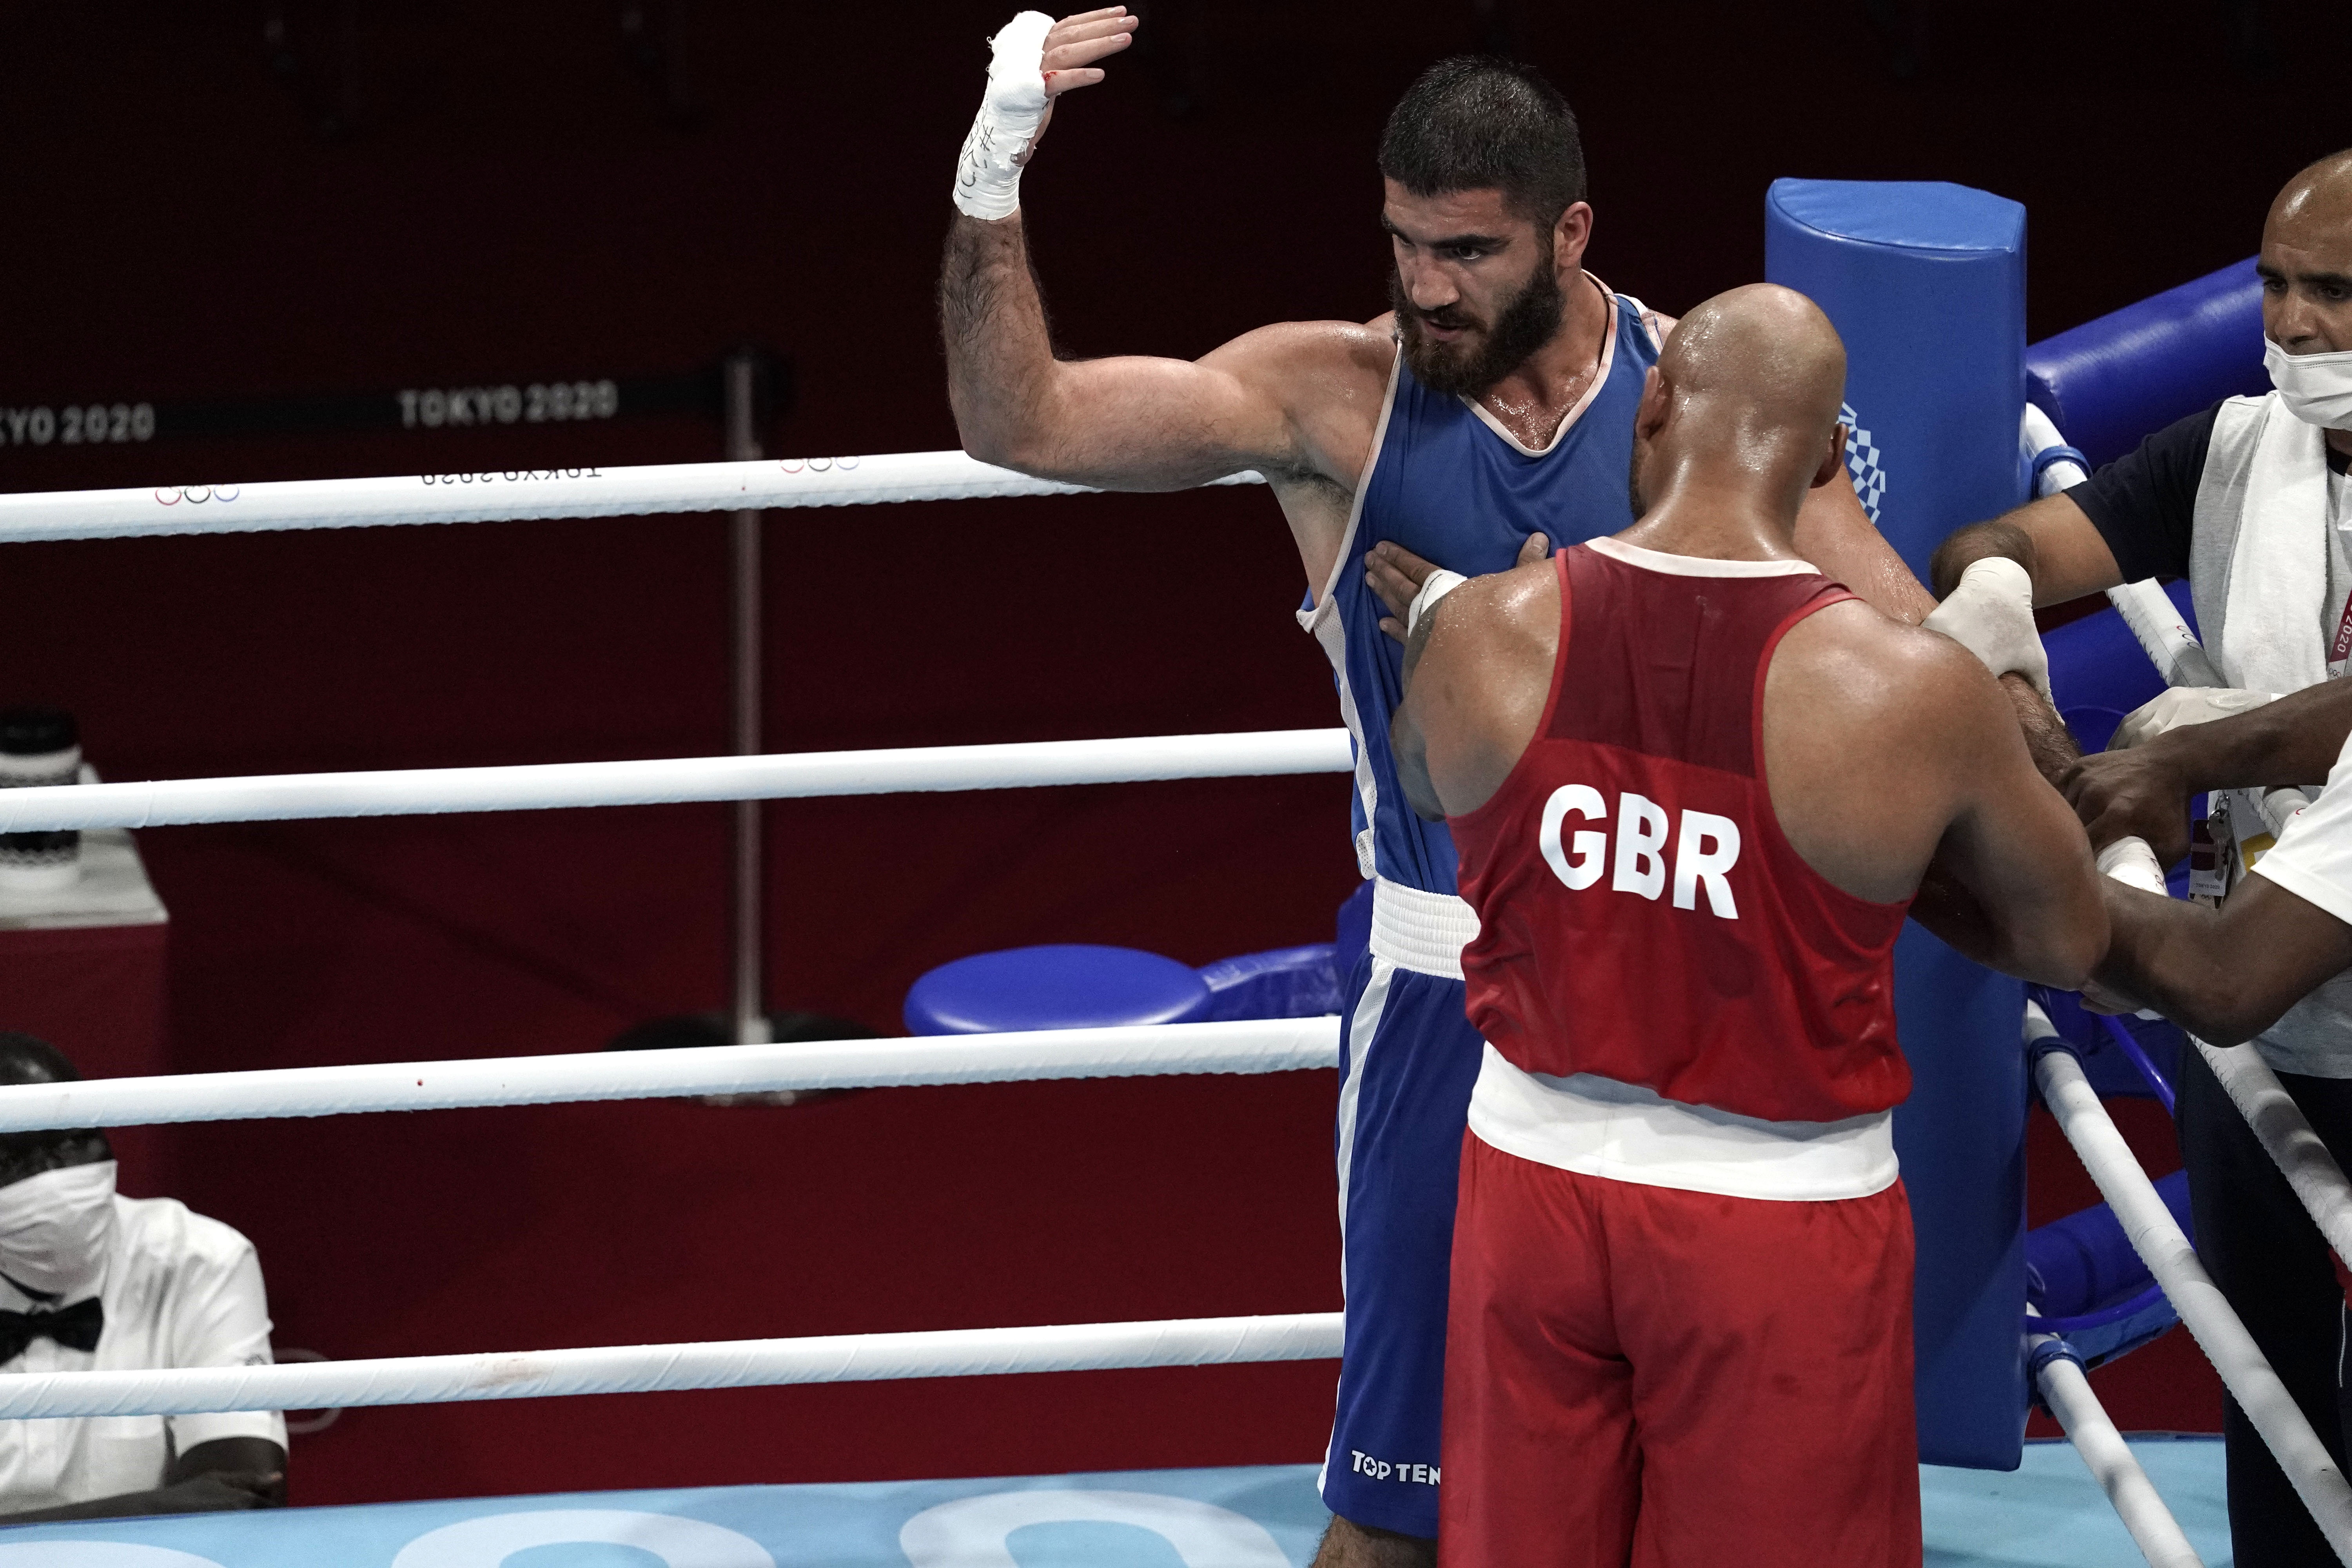 Aug 1, 2021; Tokyo, Japan; Mourad Aliev (FRA), blue shorts, yells at officials after being disqualified in his men's super heavy quarterfinal bout against Frazer Clarke (GBR), red shorts, during the Tokyo 2020 Olympic Summer Games at Kokugikan Arena. Mandatory Credit: Andrew P. Scott-USA TODAY Sports